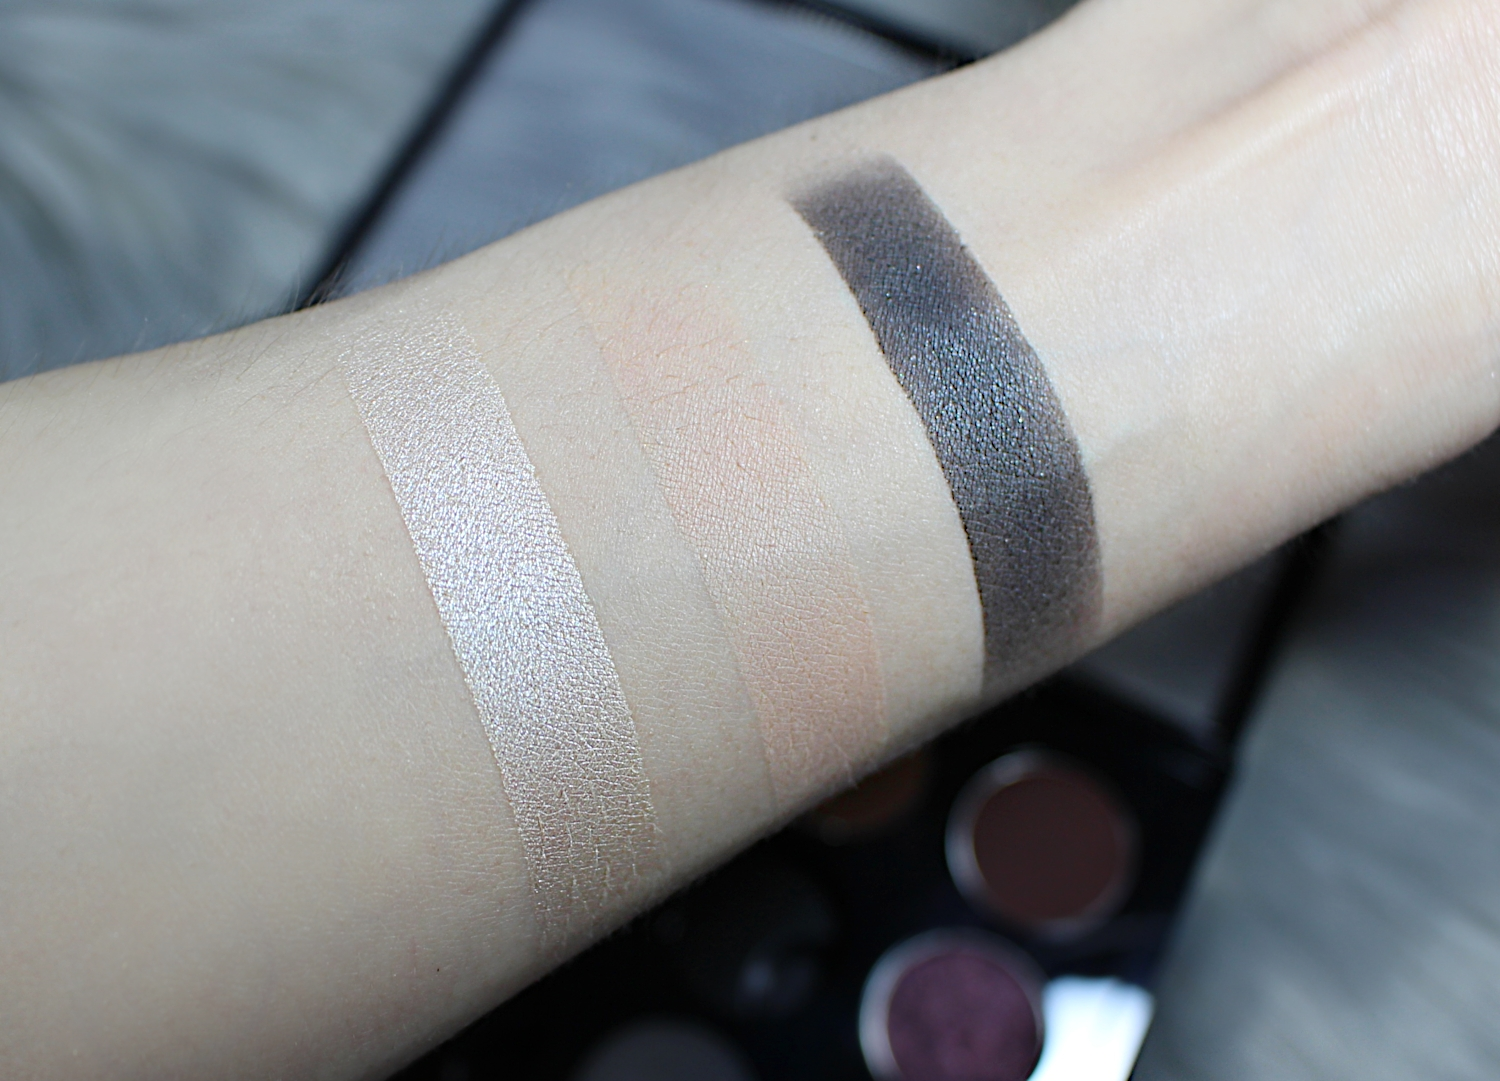 maccosmetics single eyesahdows in shades brule nylon and print are swatched on the skin